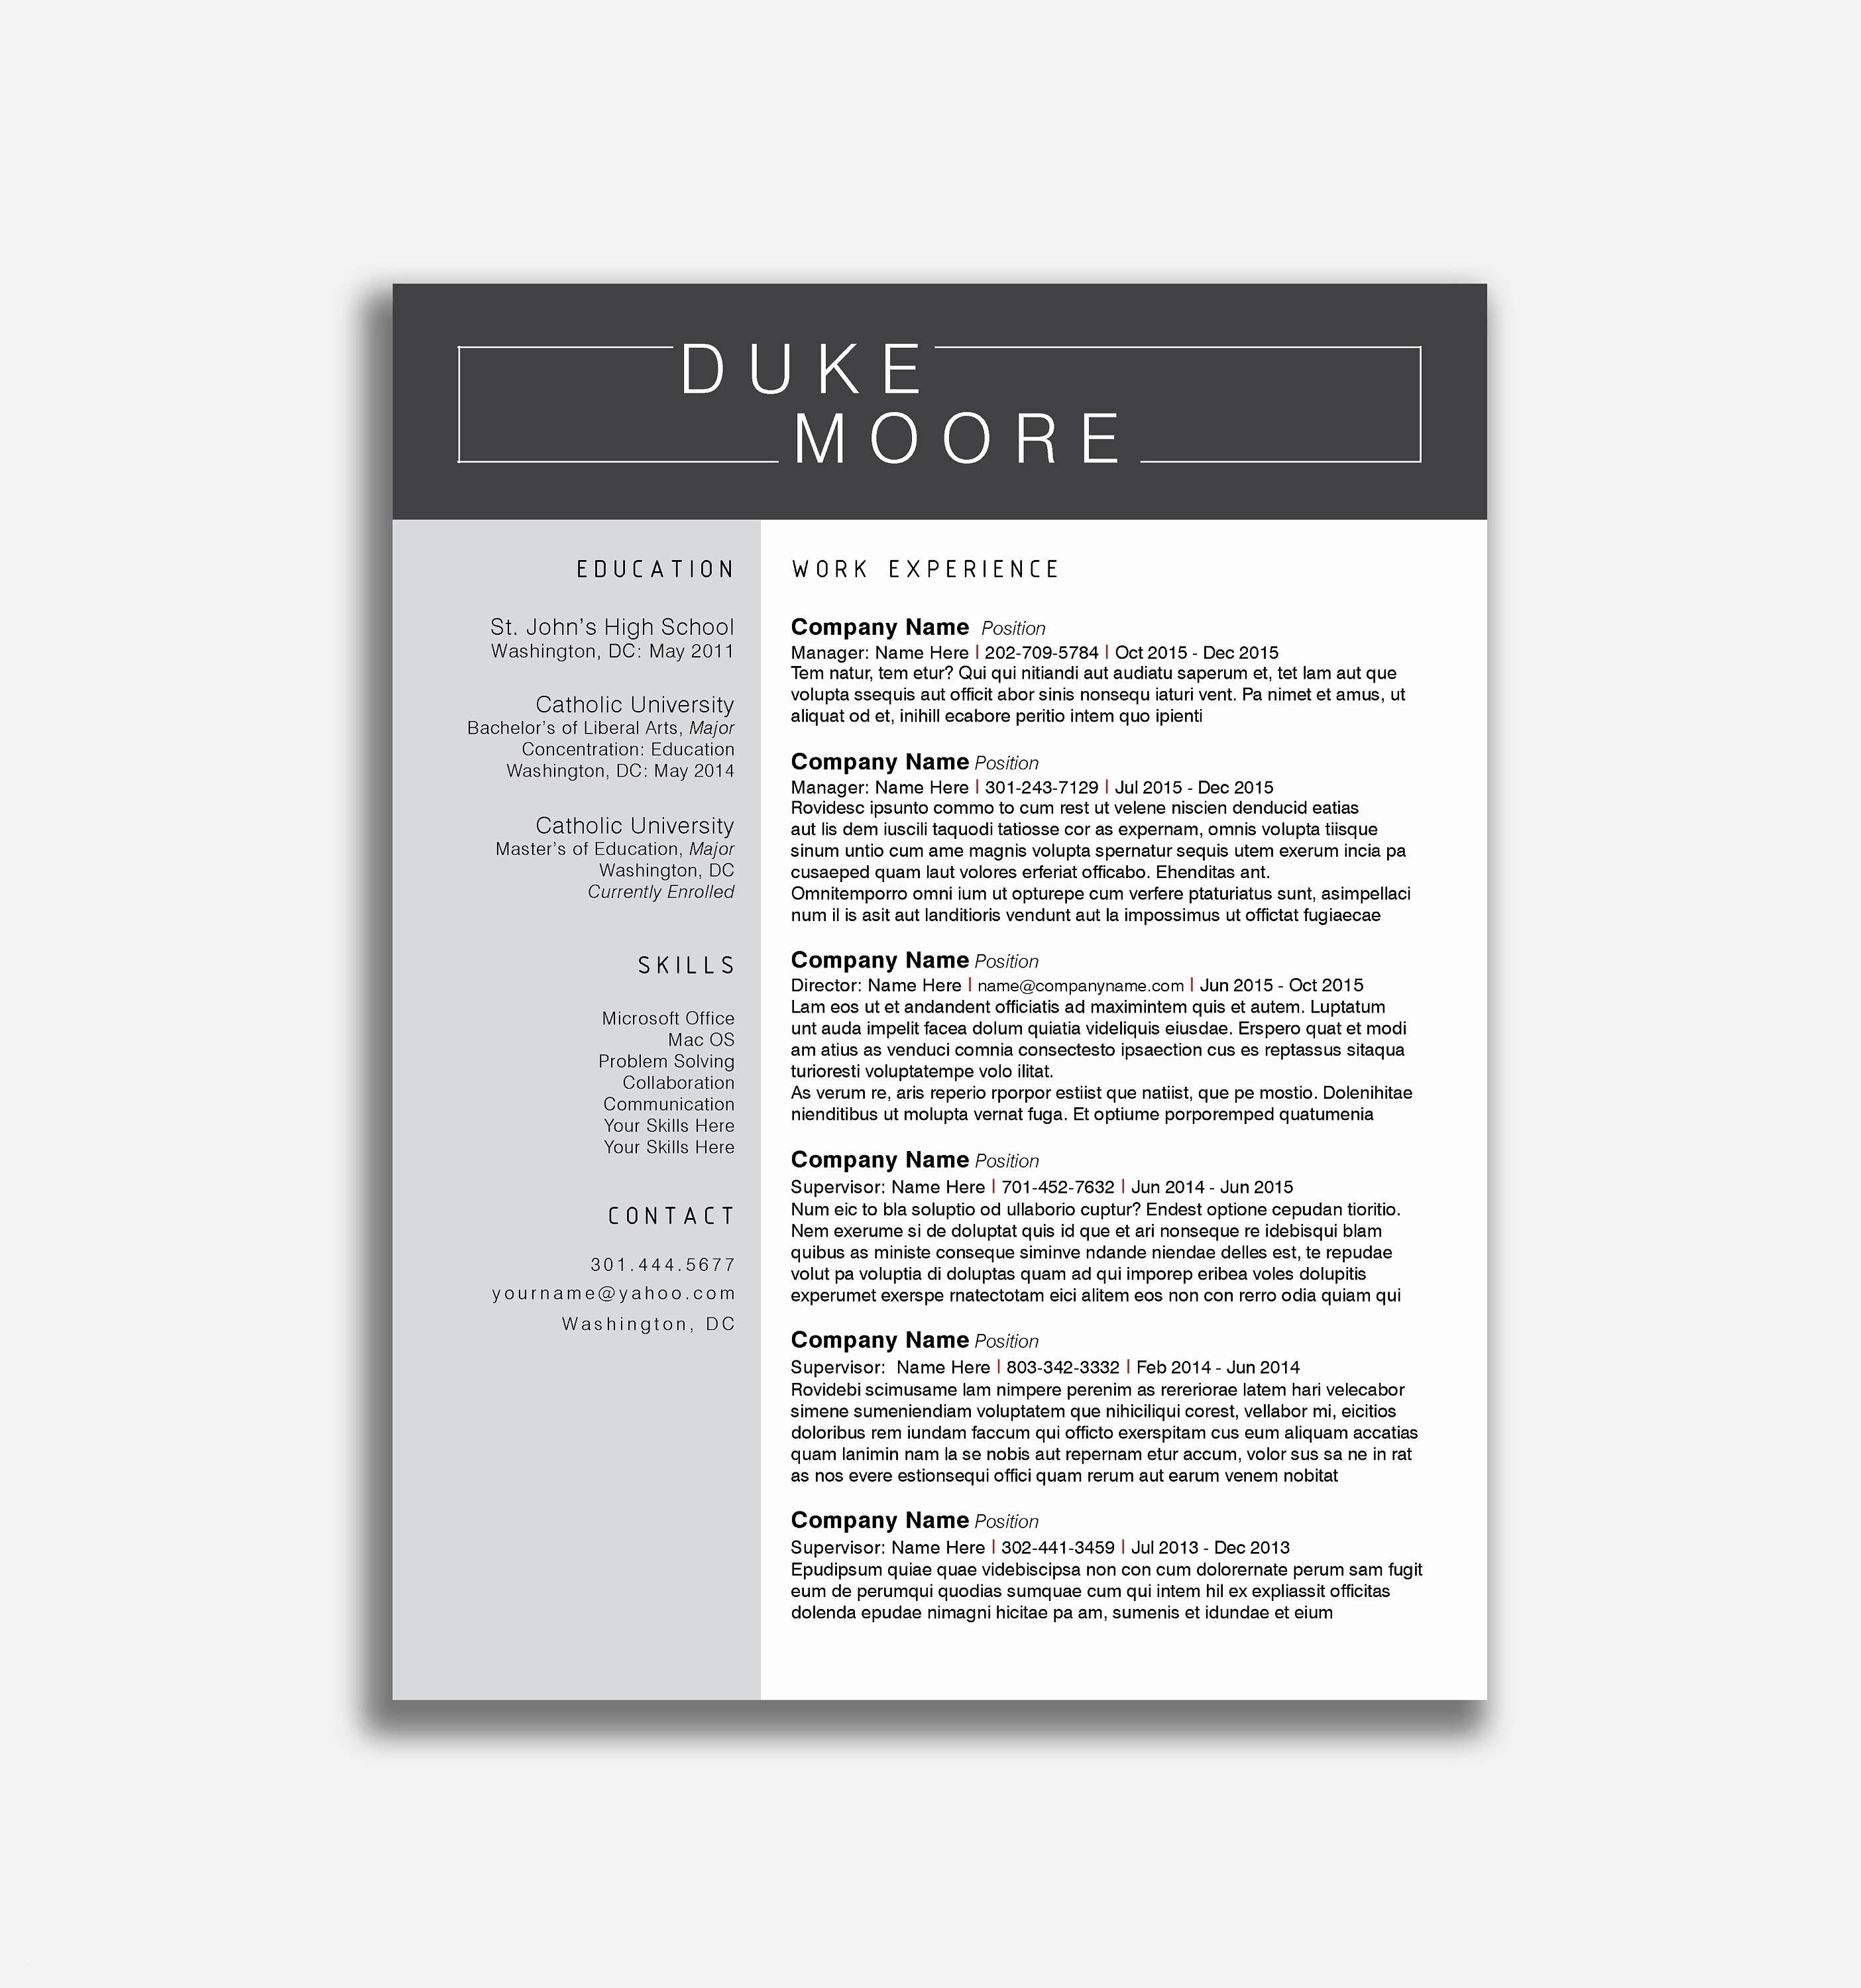 Microsoft Word Resumes Templates - Resume Templates Word 2013 New Resume Template Layout Inspirational